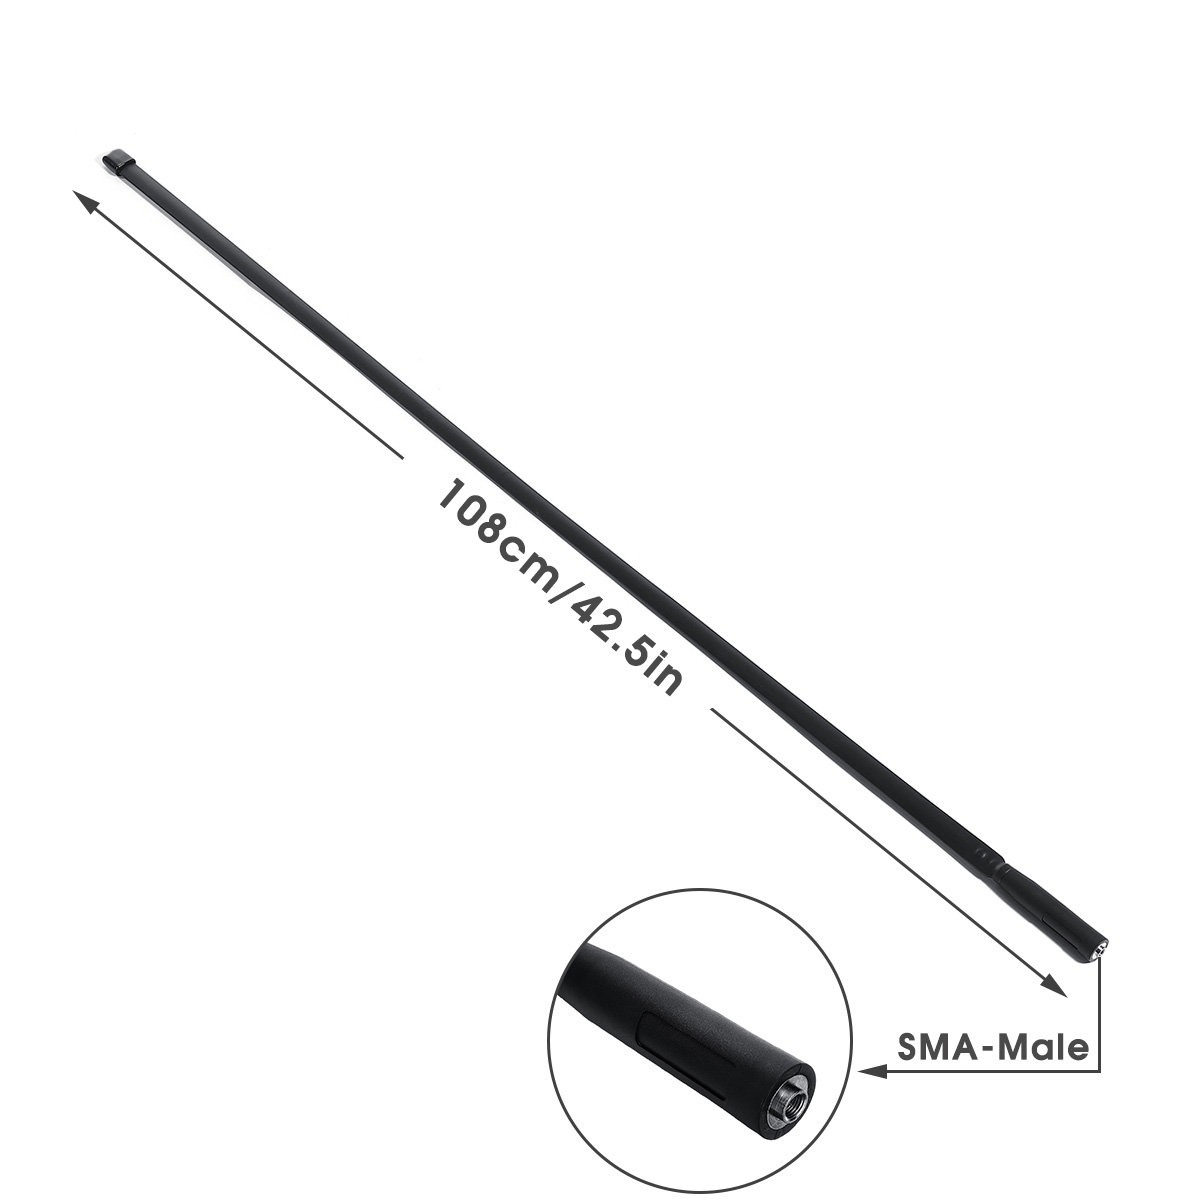 108cm/42.5in SMA-Male Dual Band Walkie Talkie Foldable CS Tactical Antenna For Baofeng UV-5R UV-82